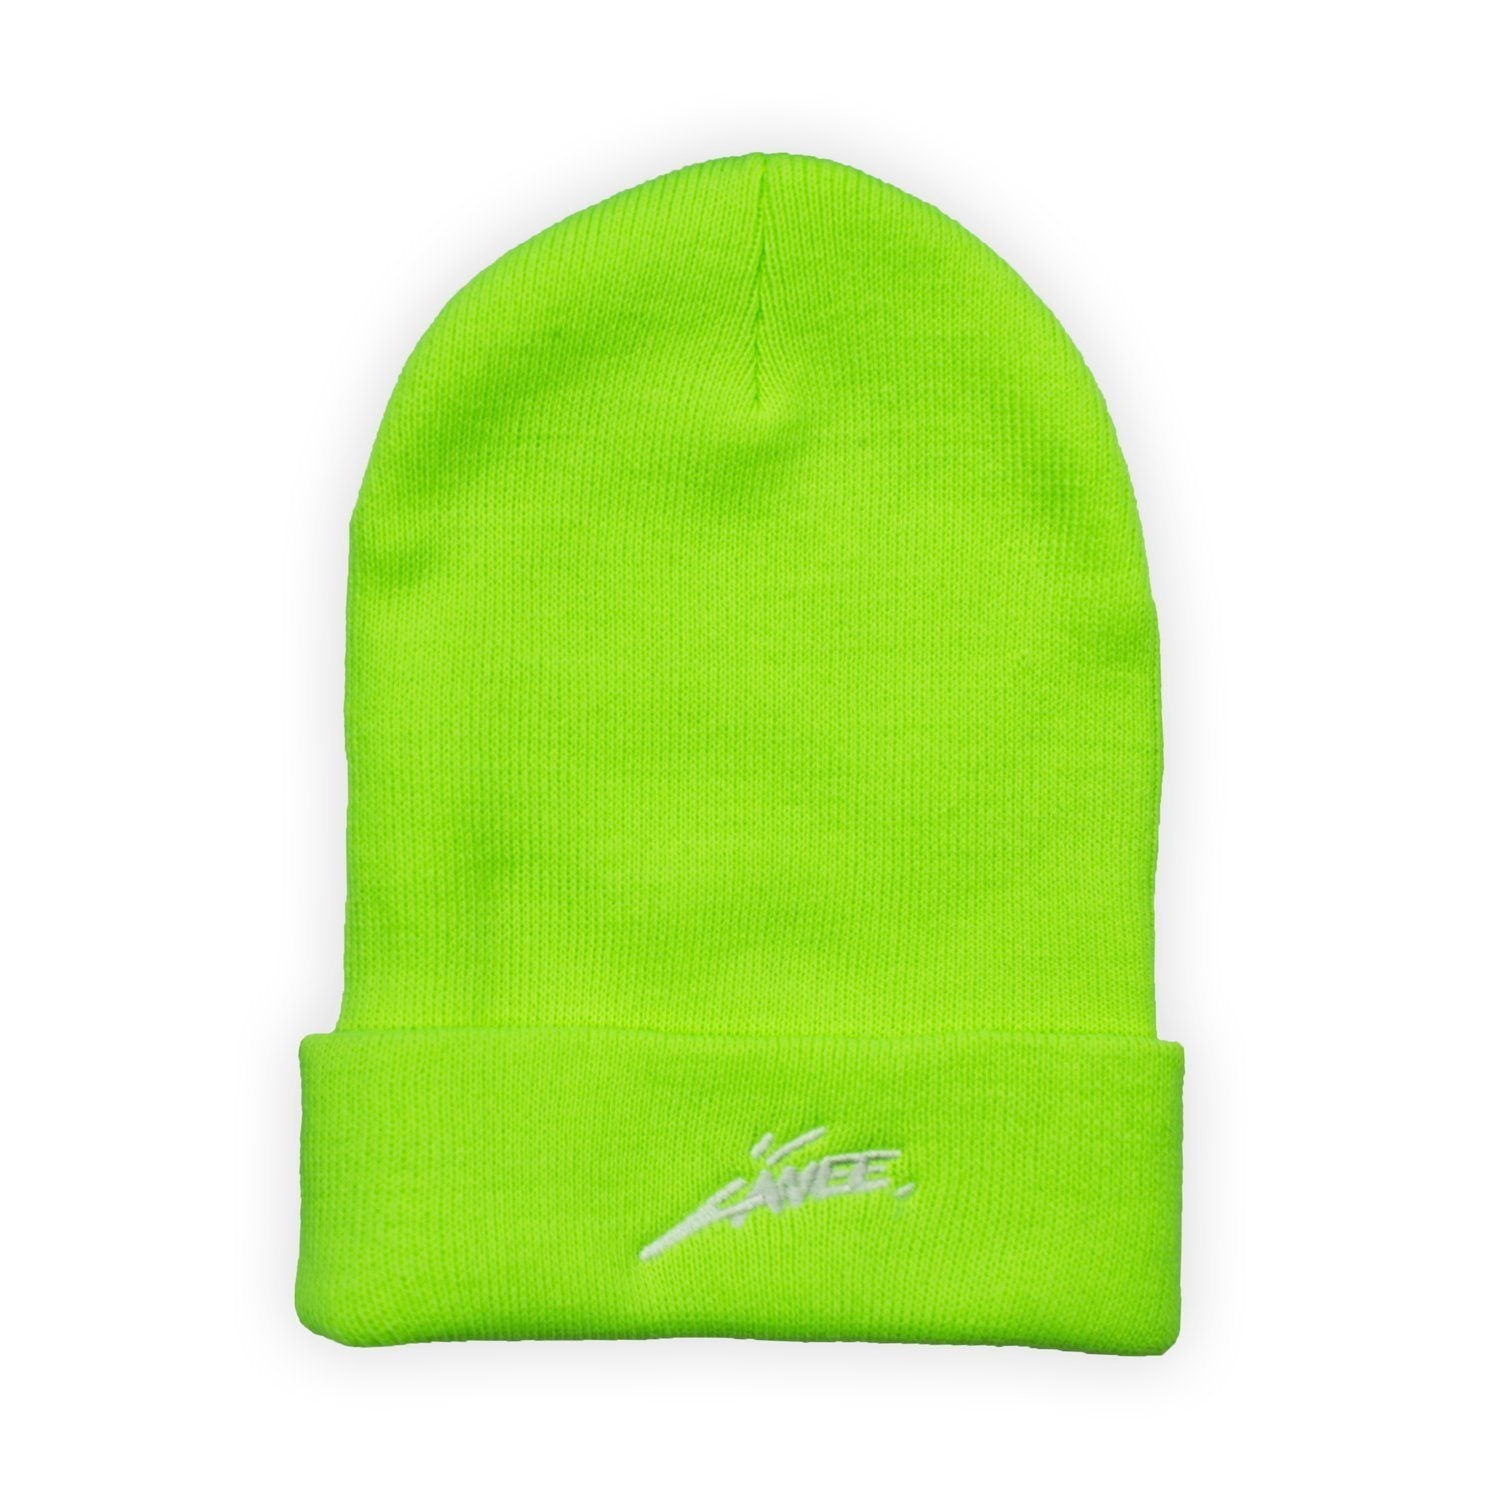 da1be7ce8f7 SAFETY GREEN FUTURE BEANIE - Lanee Clothing - Streetwear made in Greece